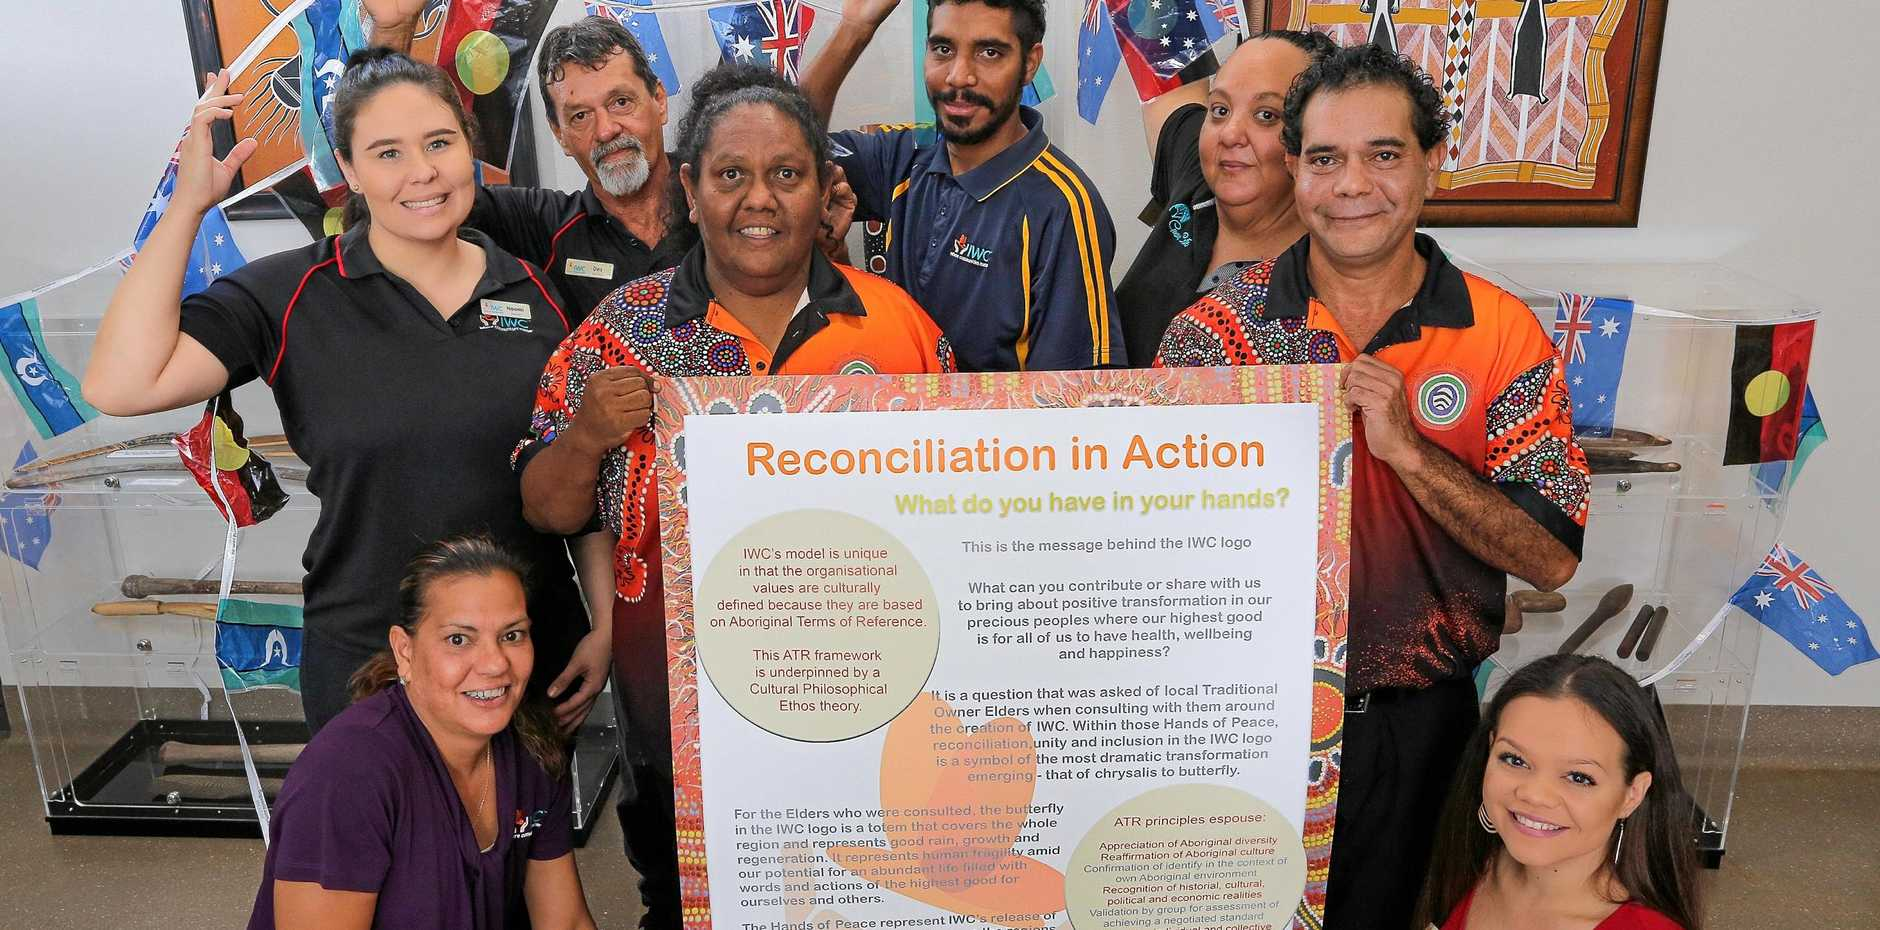 RECONCILIATION: IWC is gearing up to celebrate National Reconciliation Week 2018, and clockwise from bottom left is Tracey Darby, Naomi Madden, Desmond Parsons, Nicole Tiger, Kale Johnson, Simone Fletcher, Byron Broome and Kiama Theuerkauf-Smith.